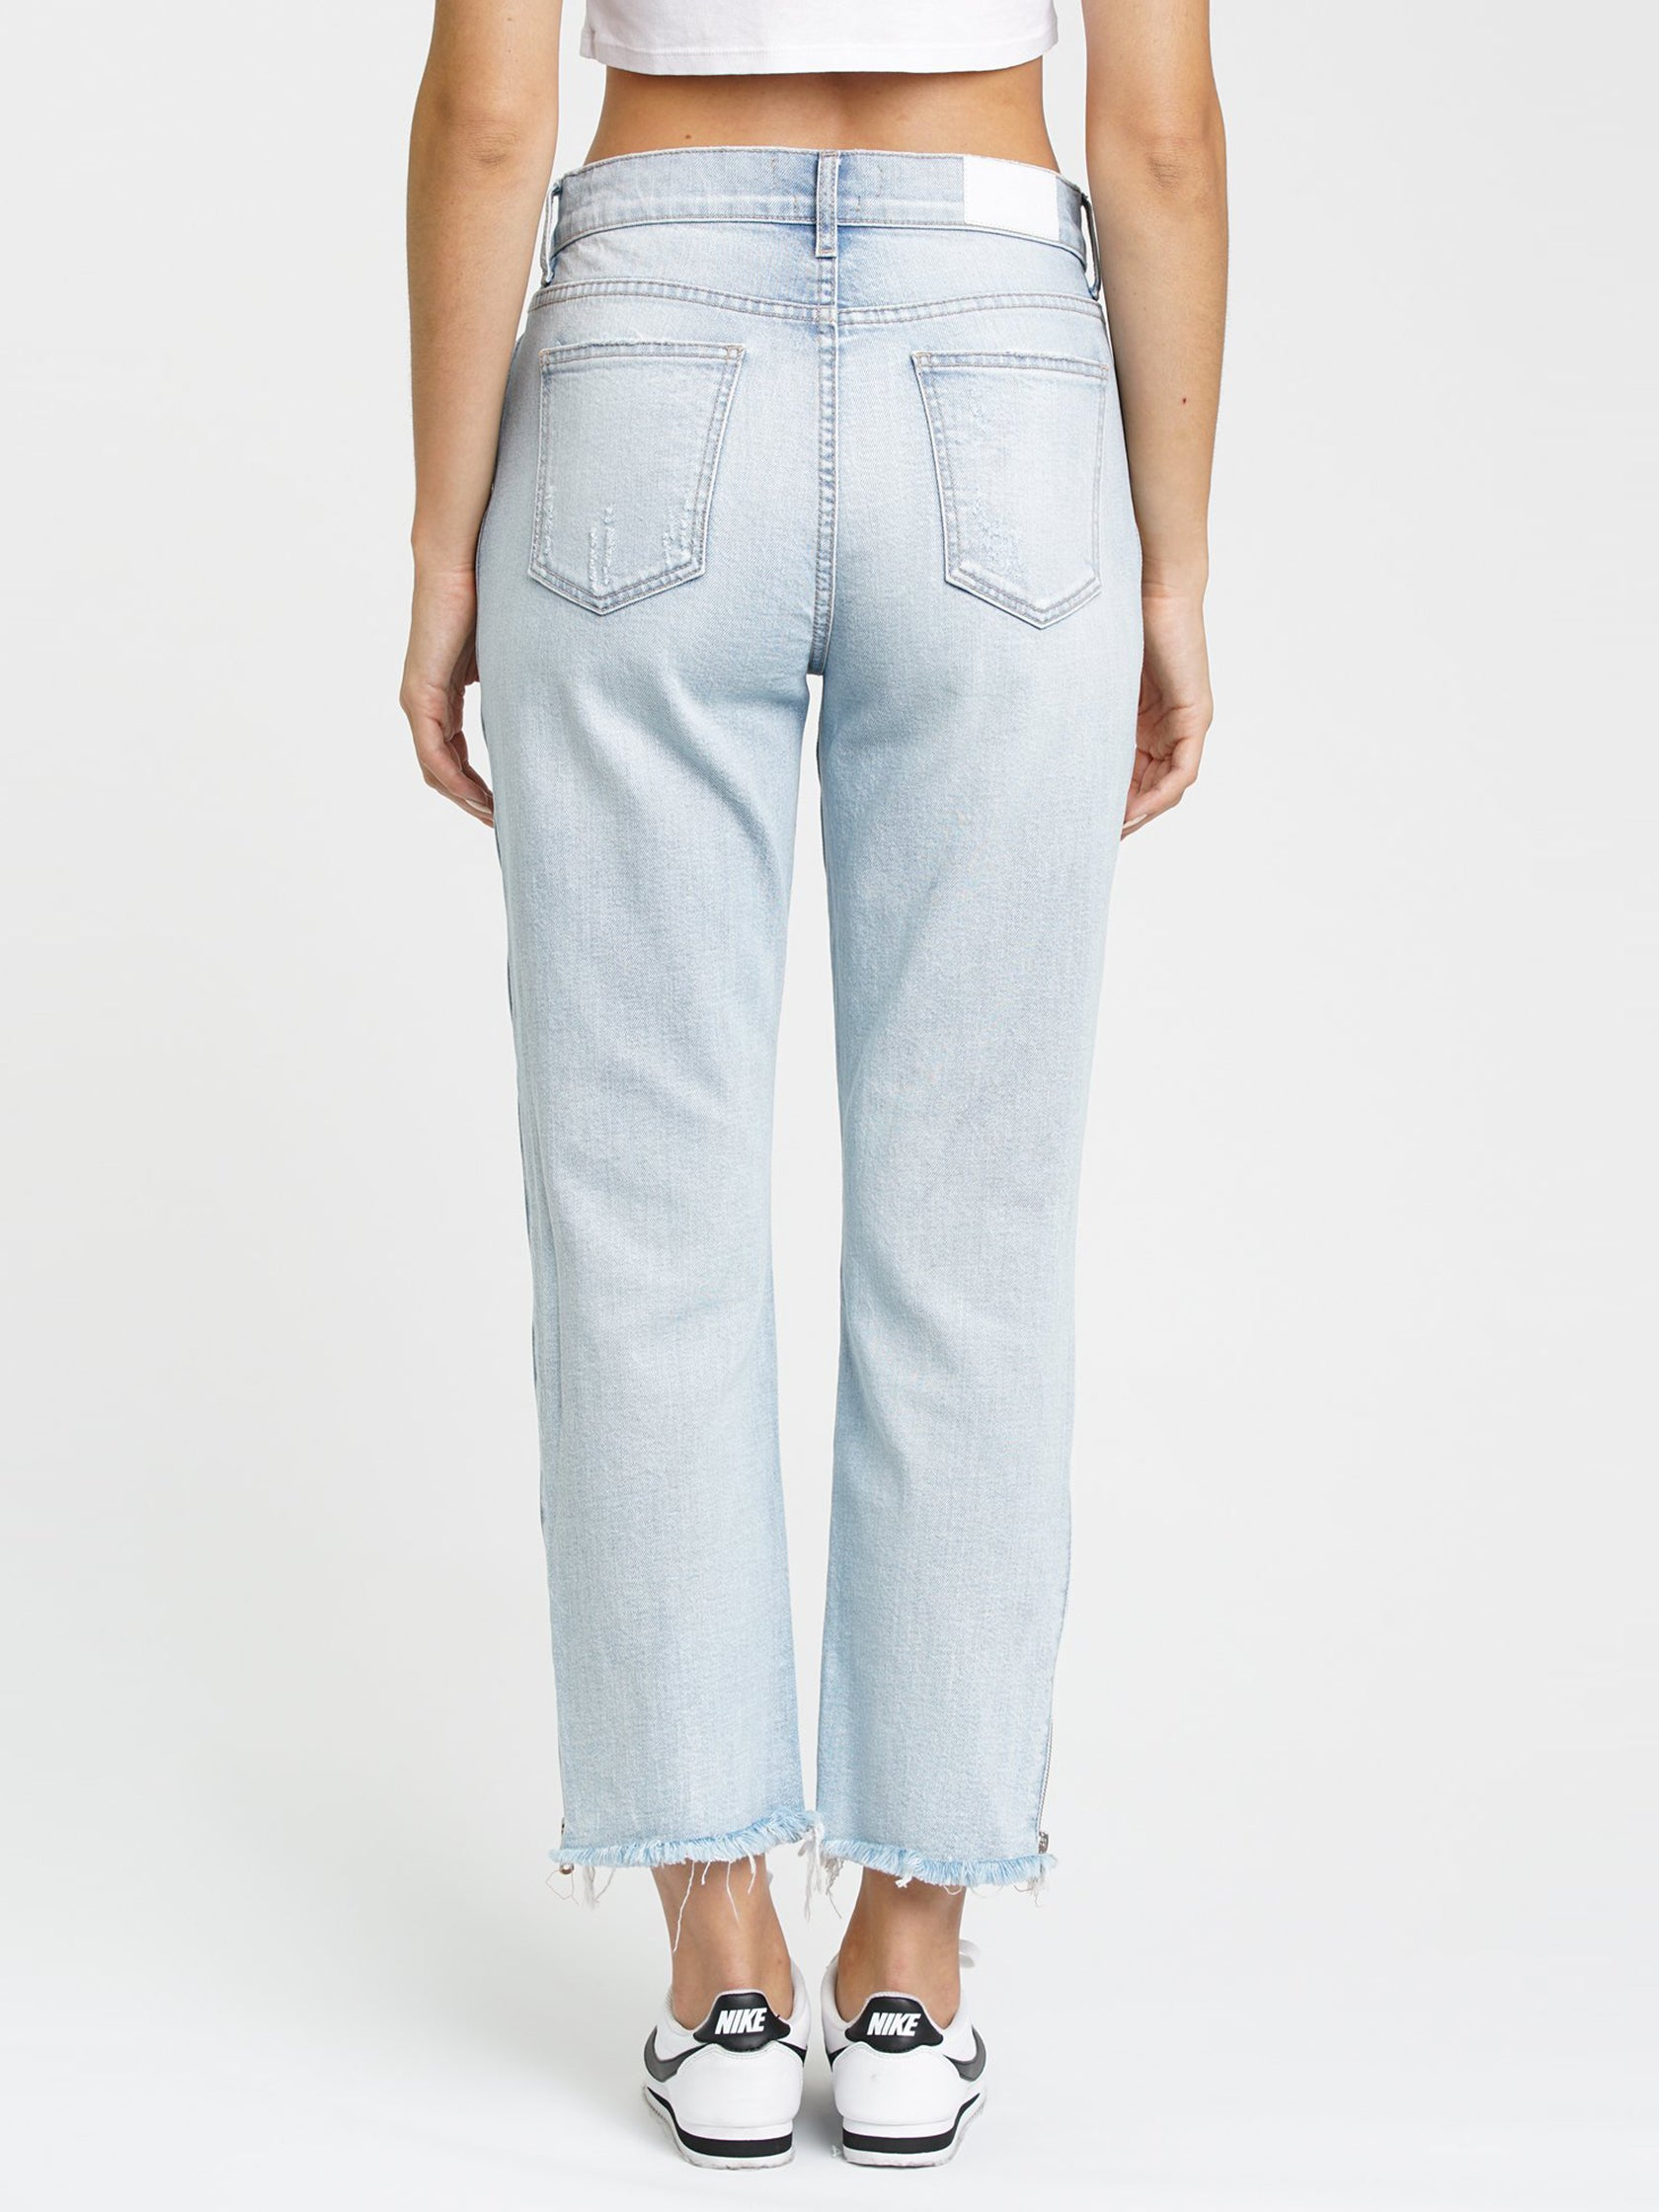 Women wearing a denim rental from PISTOLA called Charlie High Rise Jeans